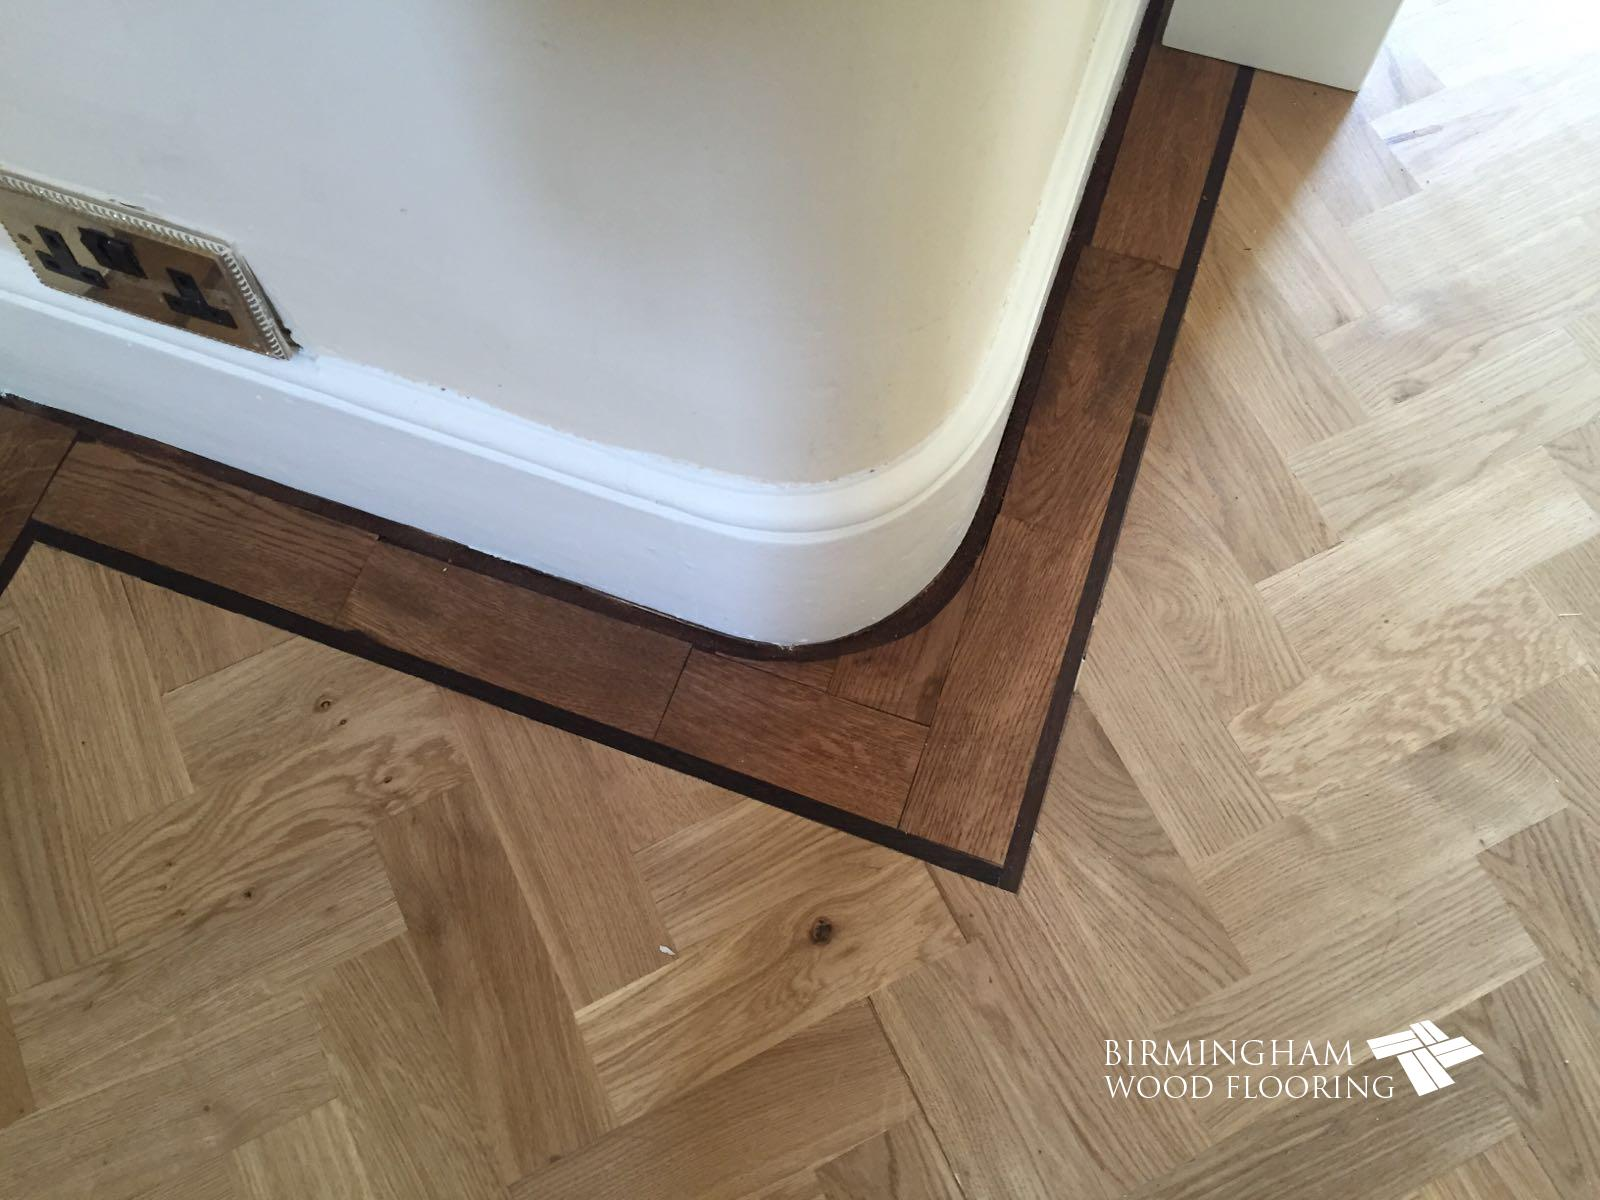 Parquet-floor-with-Wenge-Feature-strip-installed-with-order-stained-medium-oak-5